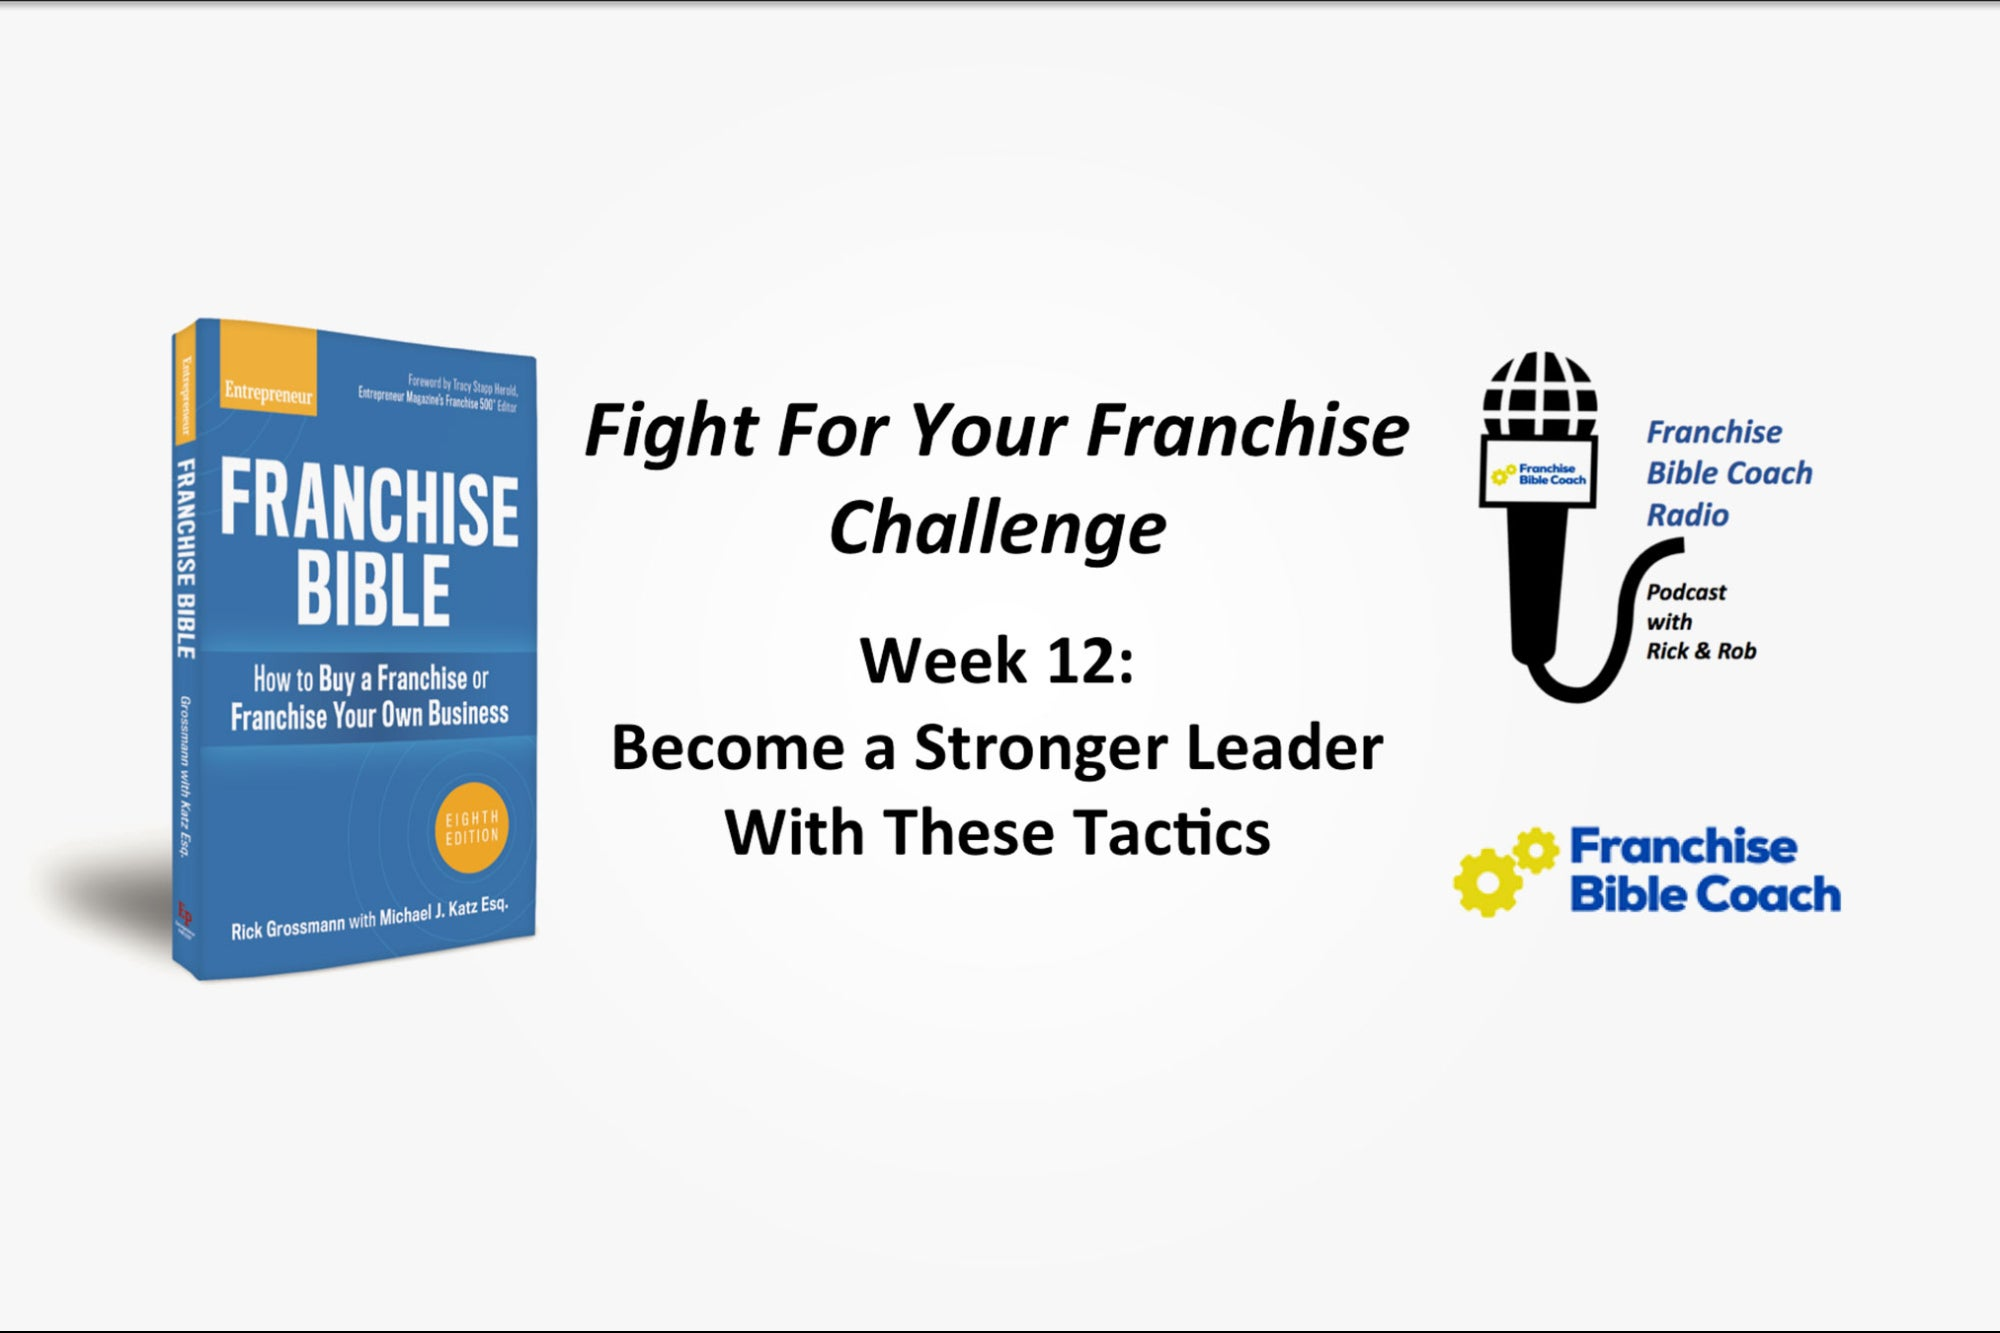 Fight for Your Franchise Challenge, Week 12: Become a Stronger Leader With These Proven Tactics